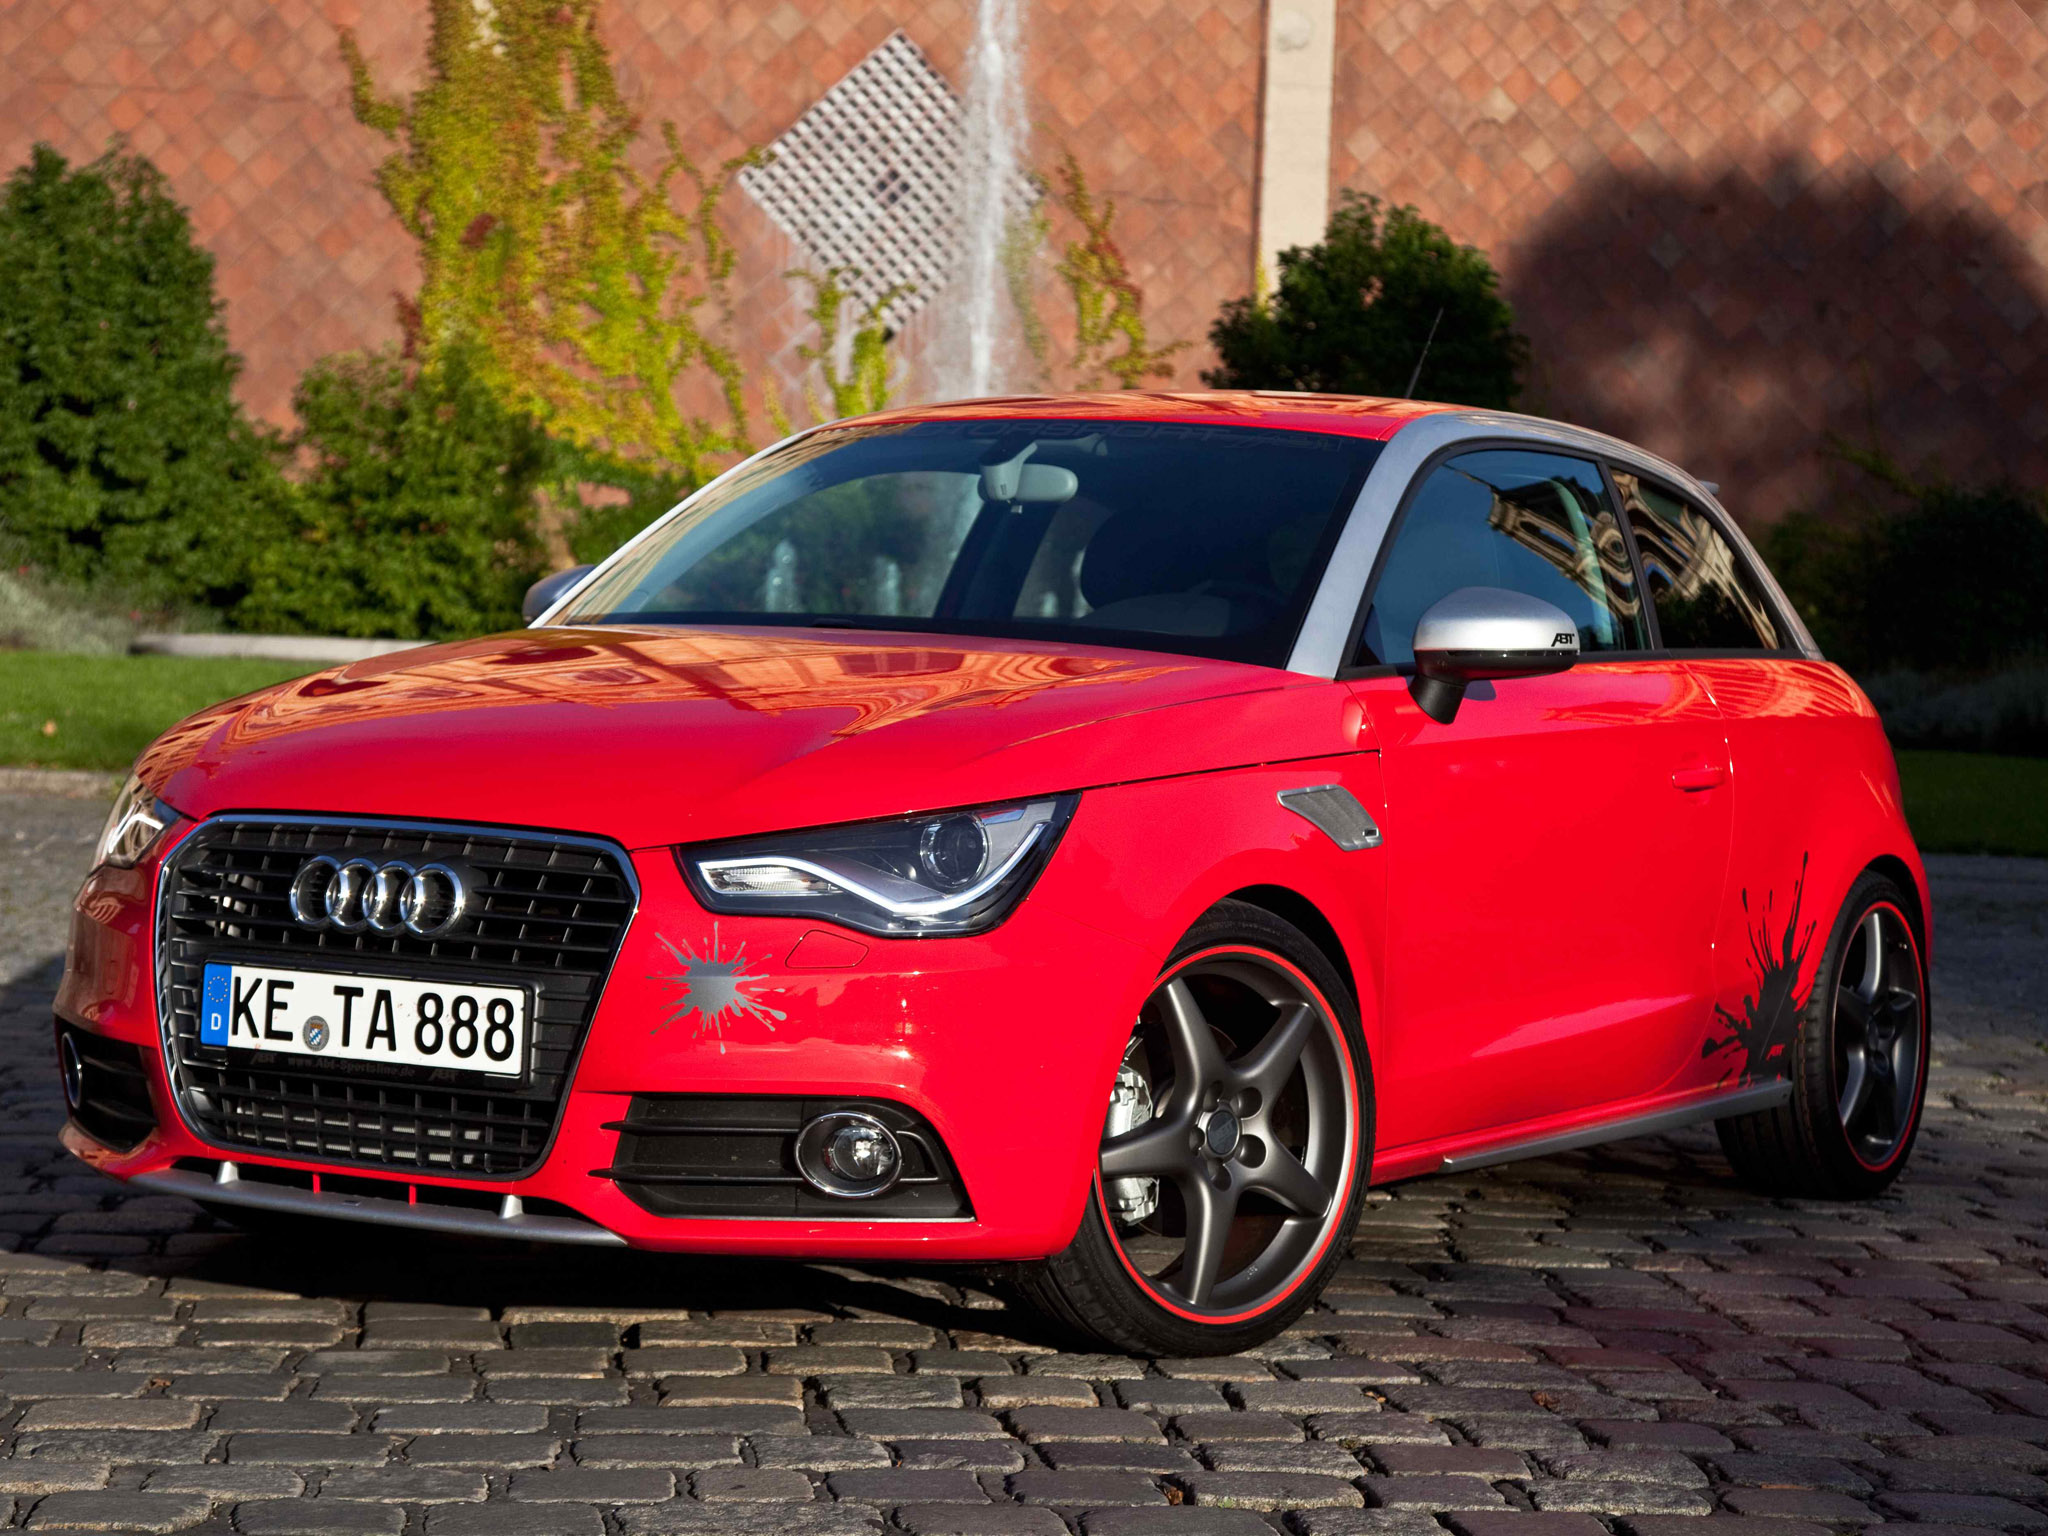 abt sportsline audi a1 as1 2010 abt sportsline audi a1 as1 2010 photo 11 car in pictures car. Black Bedroom Furniture Sets. Home Design Ideas